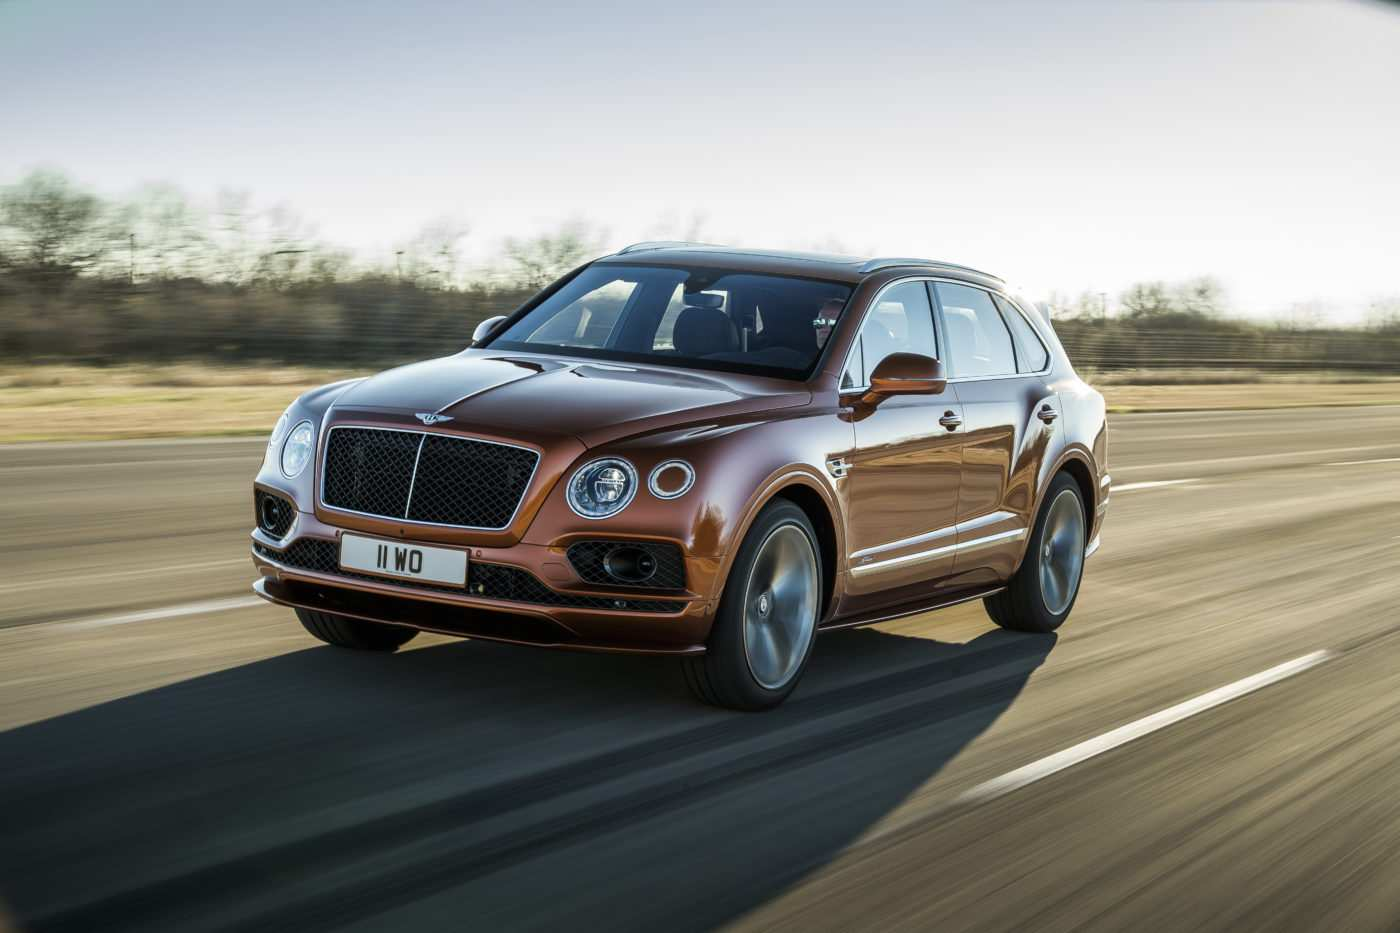 95 A 2020 Bentley Suv Price And Release Date